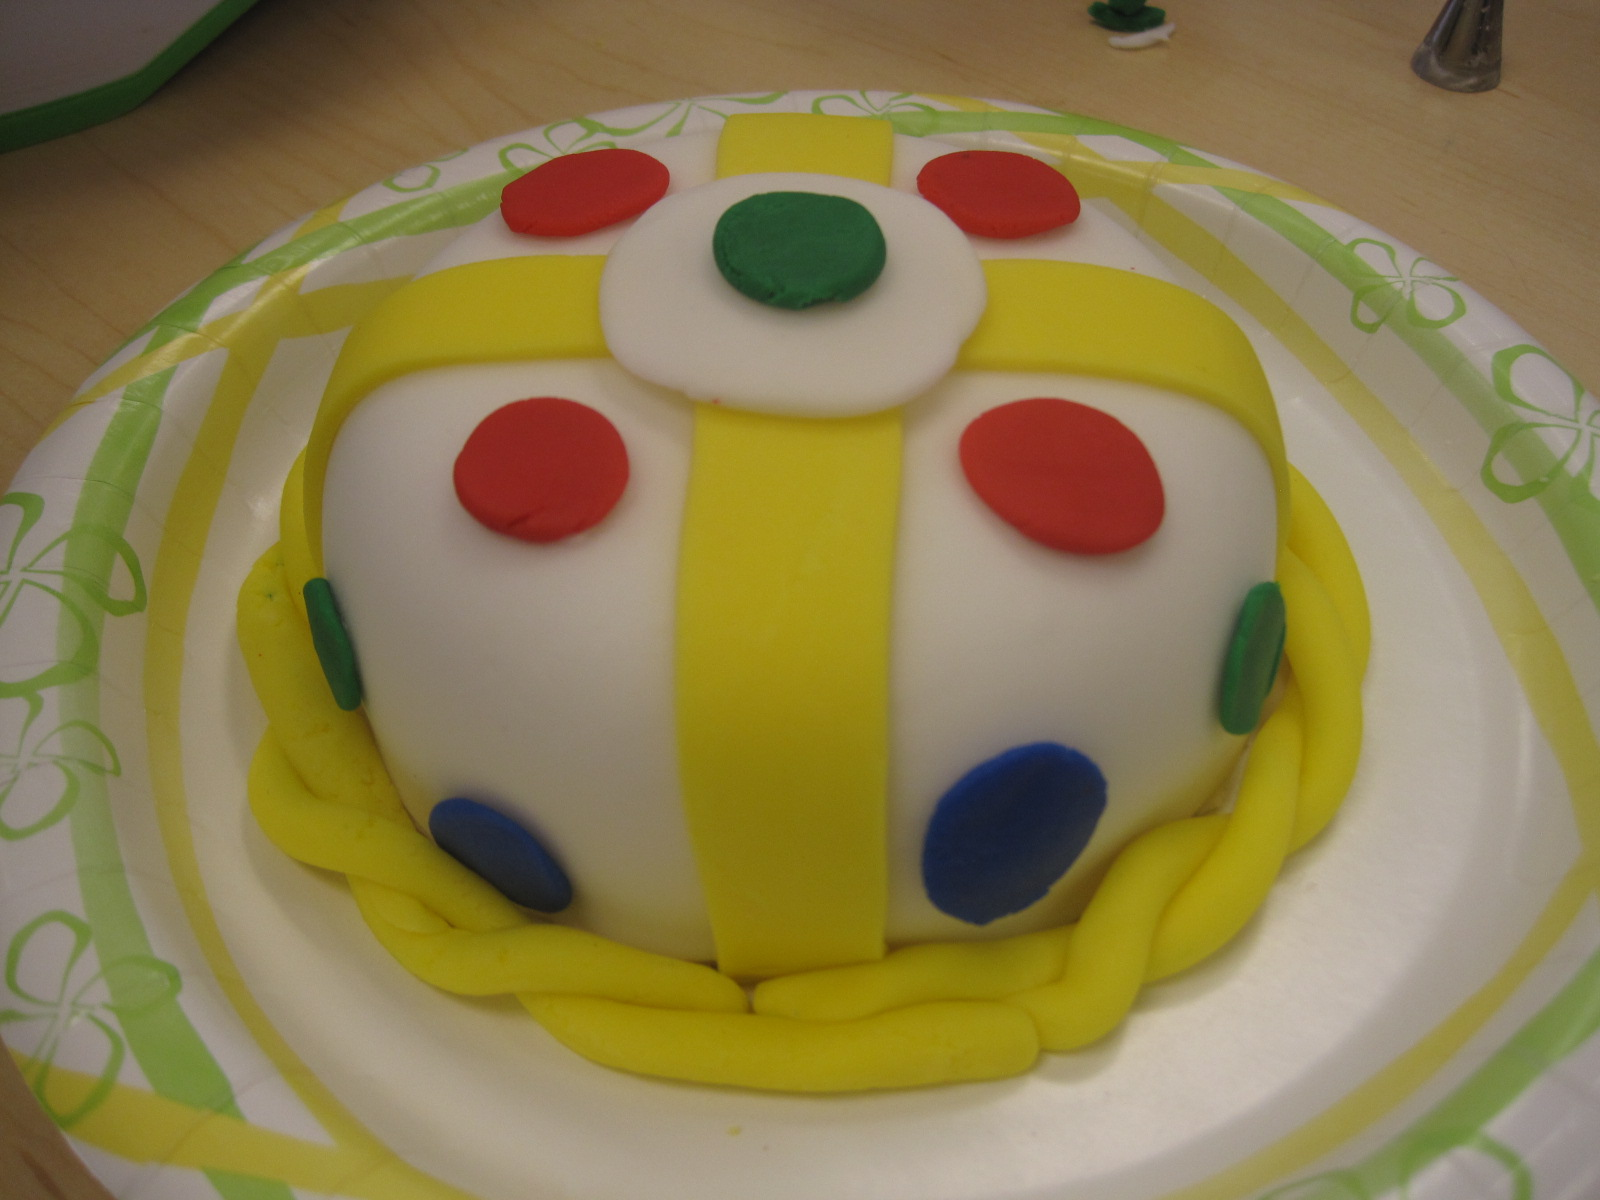 Cake Decorating Classes Near Charlotte Nc : Our Londry Room: The Final Countdown!!!